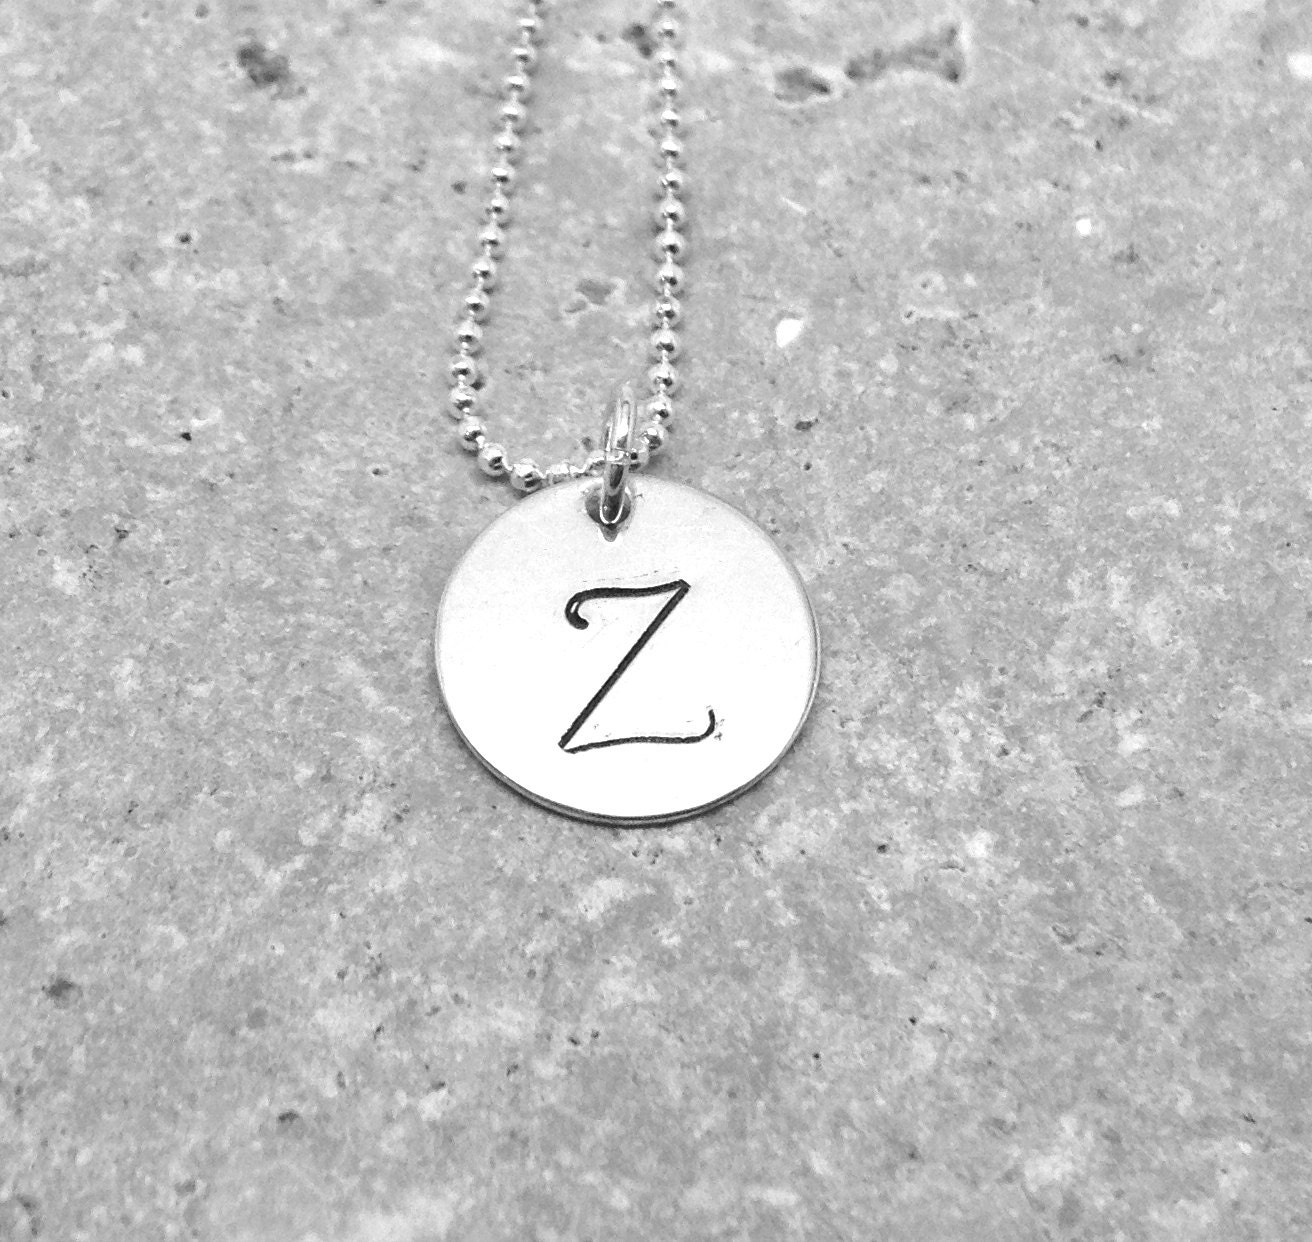 letter a initial necklace large initial necklace letter z necklace sterling silver 17416 | il fullxfull.608507755 edtx